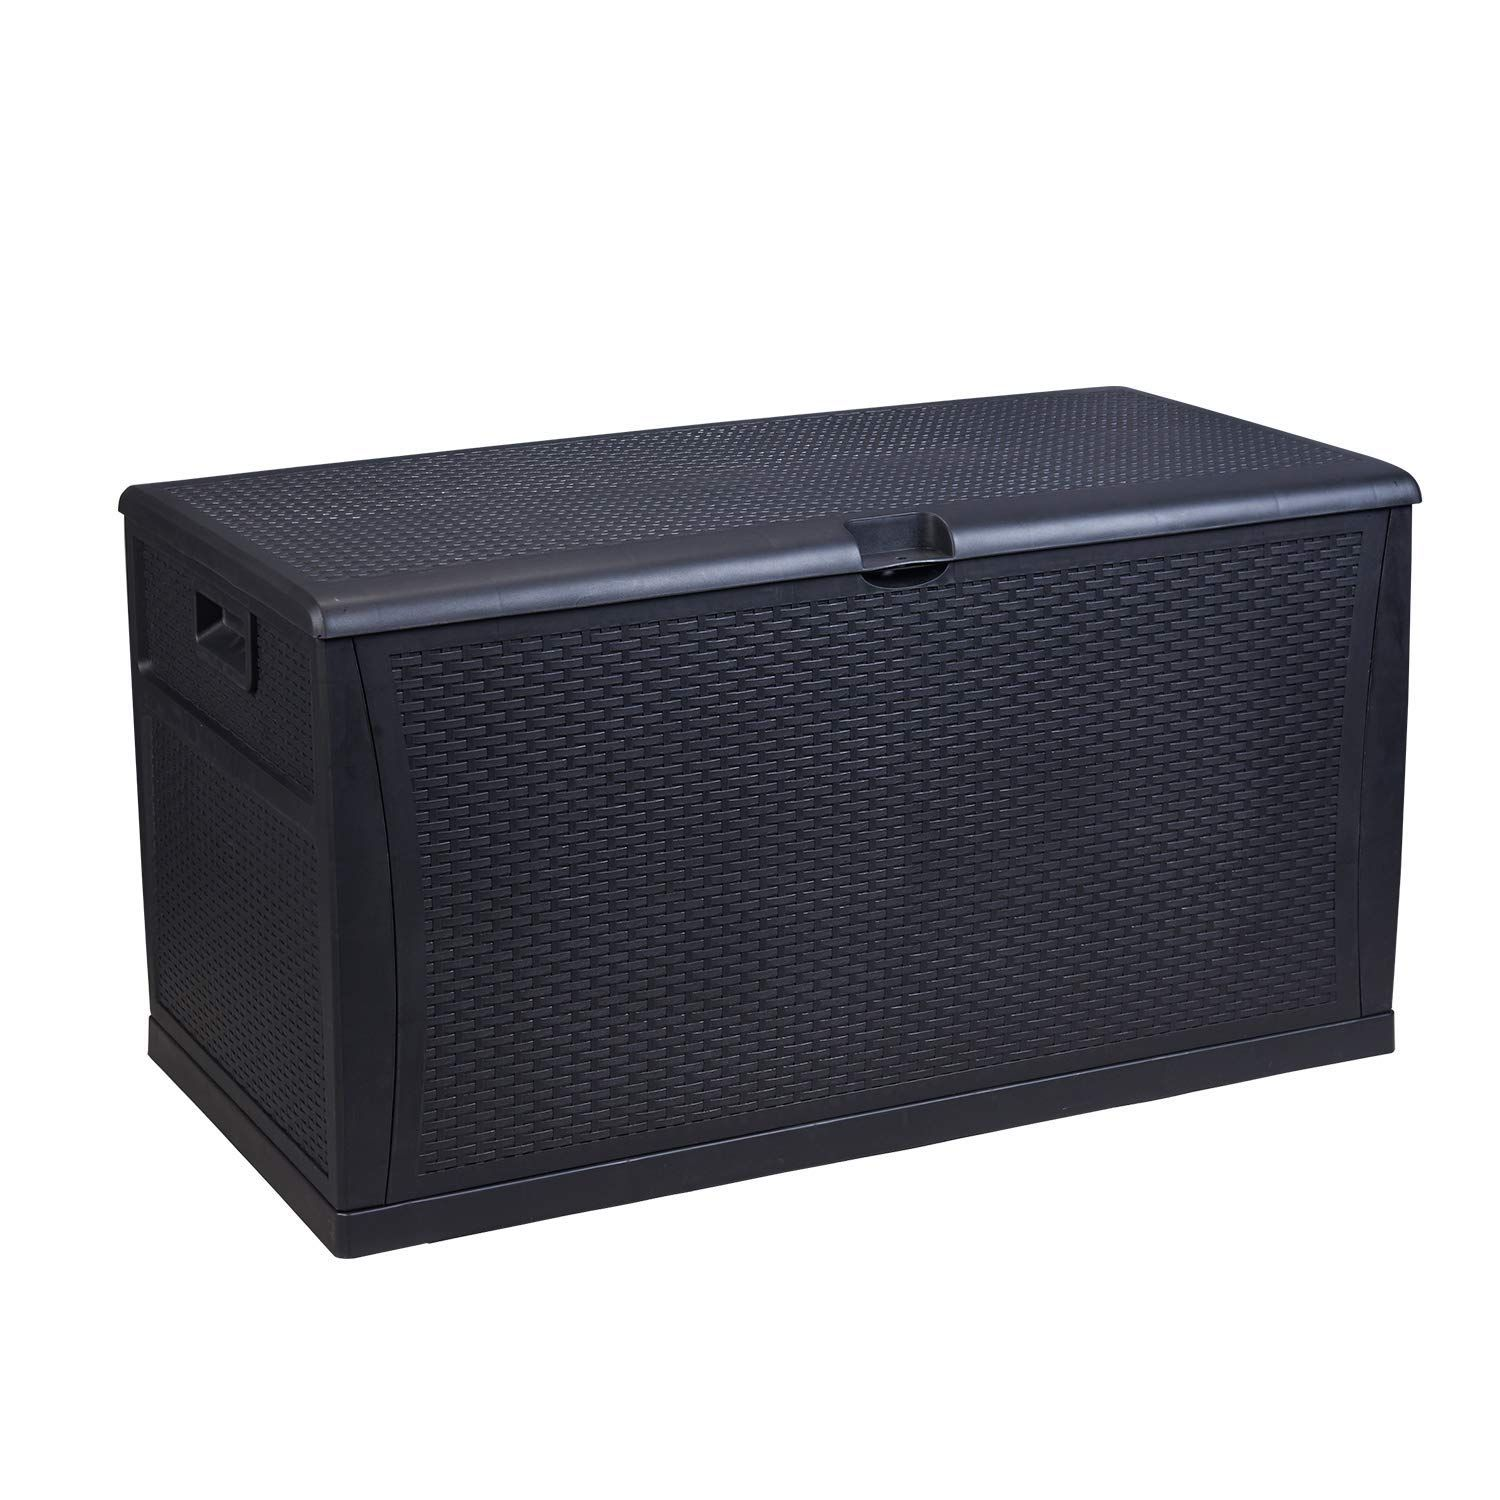 Gdy 120 Gallon Patio Storage Deck Box Outdoor Storage Plastic Bench Box Read More At The Image Link It In 2020 Patio Storage Bench Patio Storage Deck Box Storage